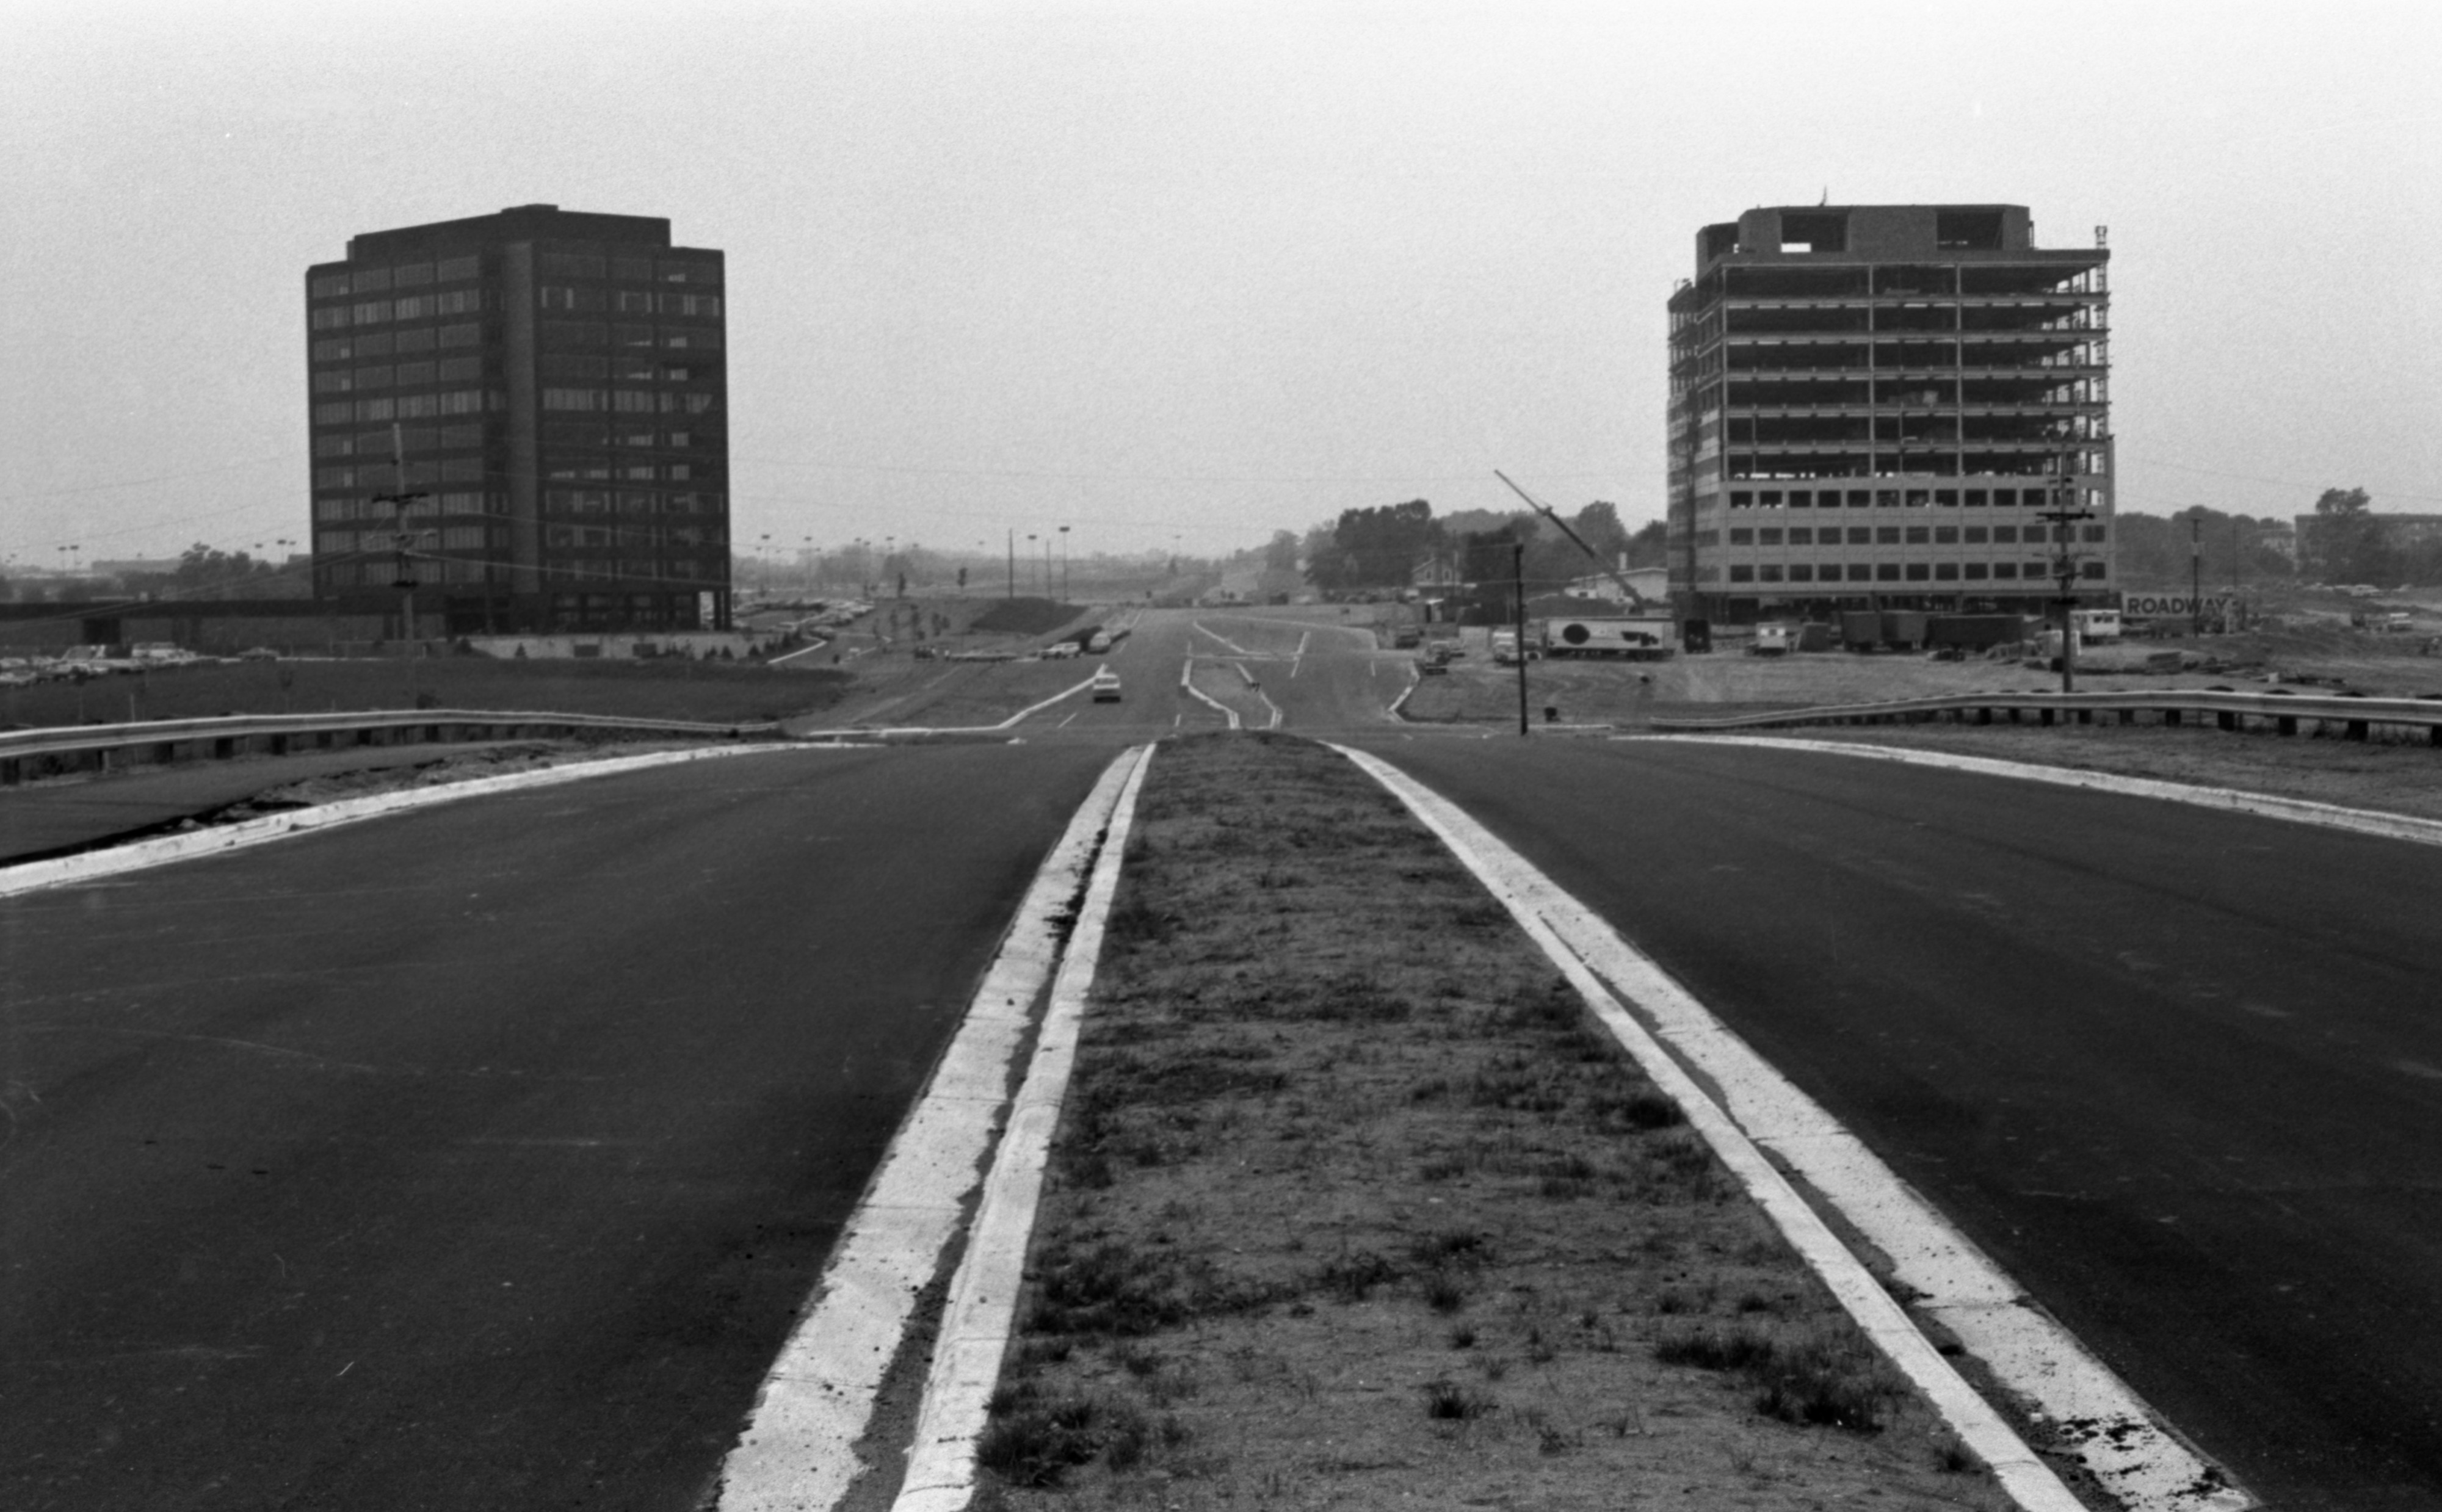 Looking West - Newly Constructed Section Of Eisenhower Parkway Between State Street & Railroad Bridge, September 1974 image